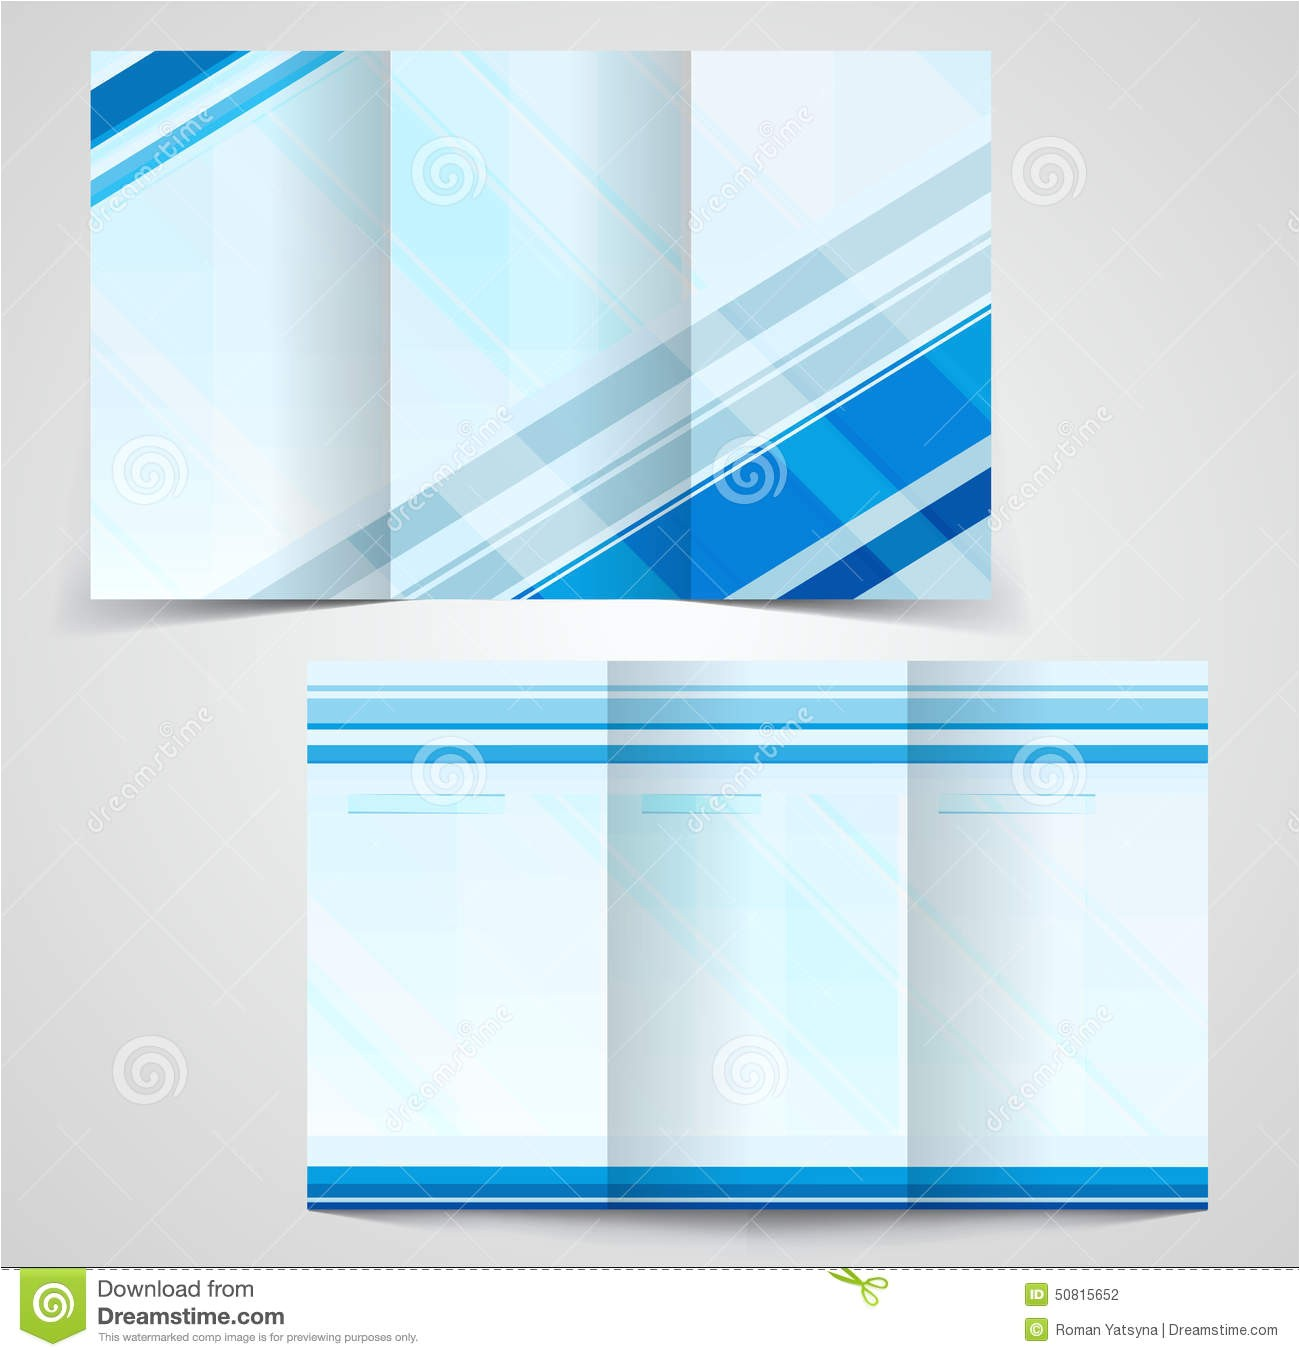 stock illustration tri fold business brochure template two sided template design mock up cover blue colors image50815652